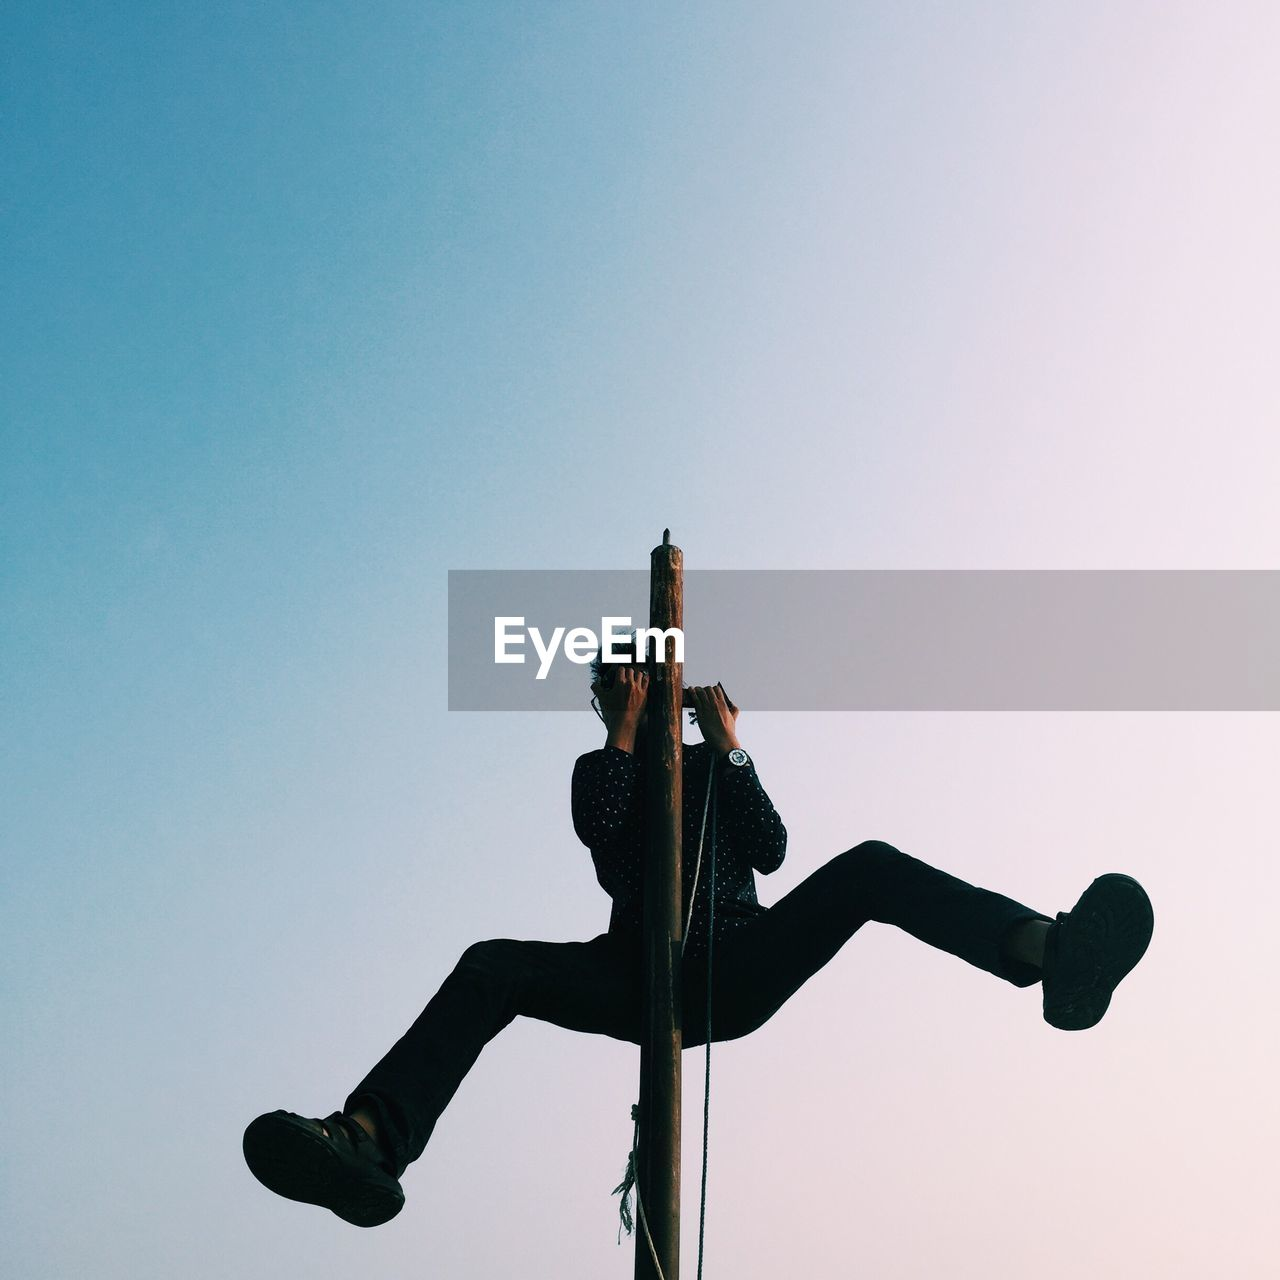 Low angle view of man climbing pole against clear sky